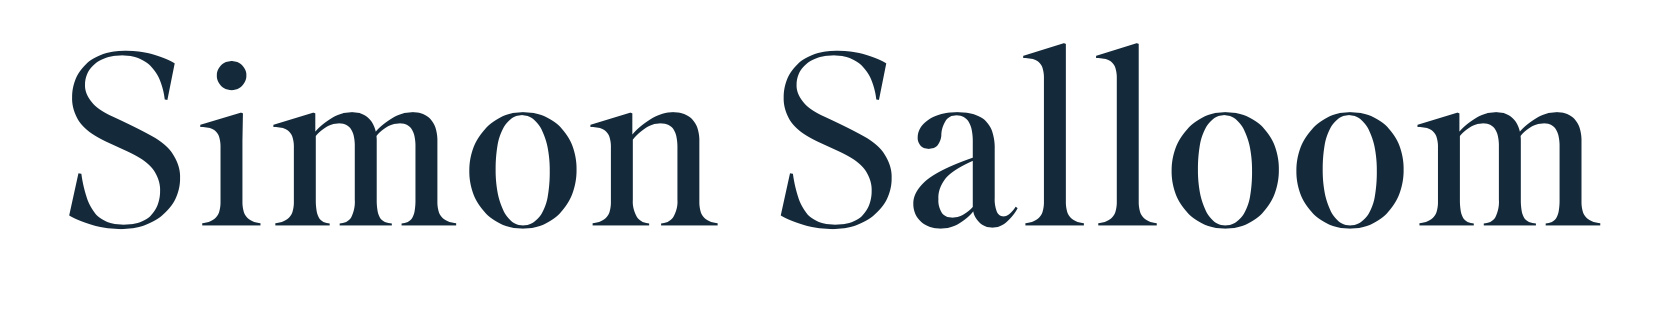 Simon Salloom Logo